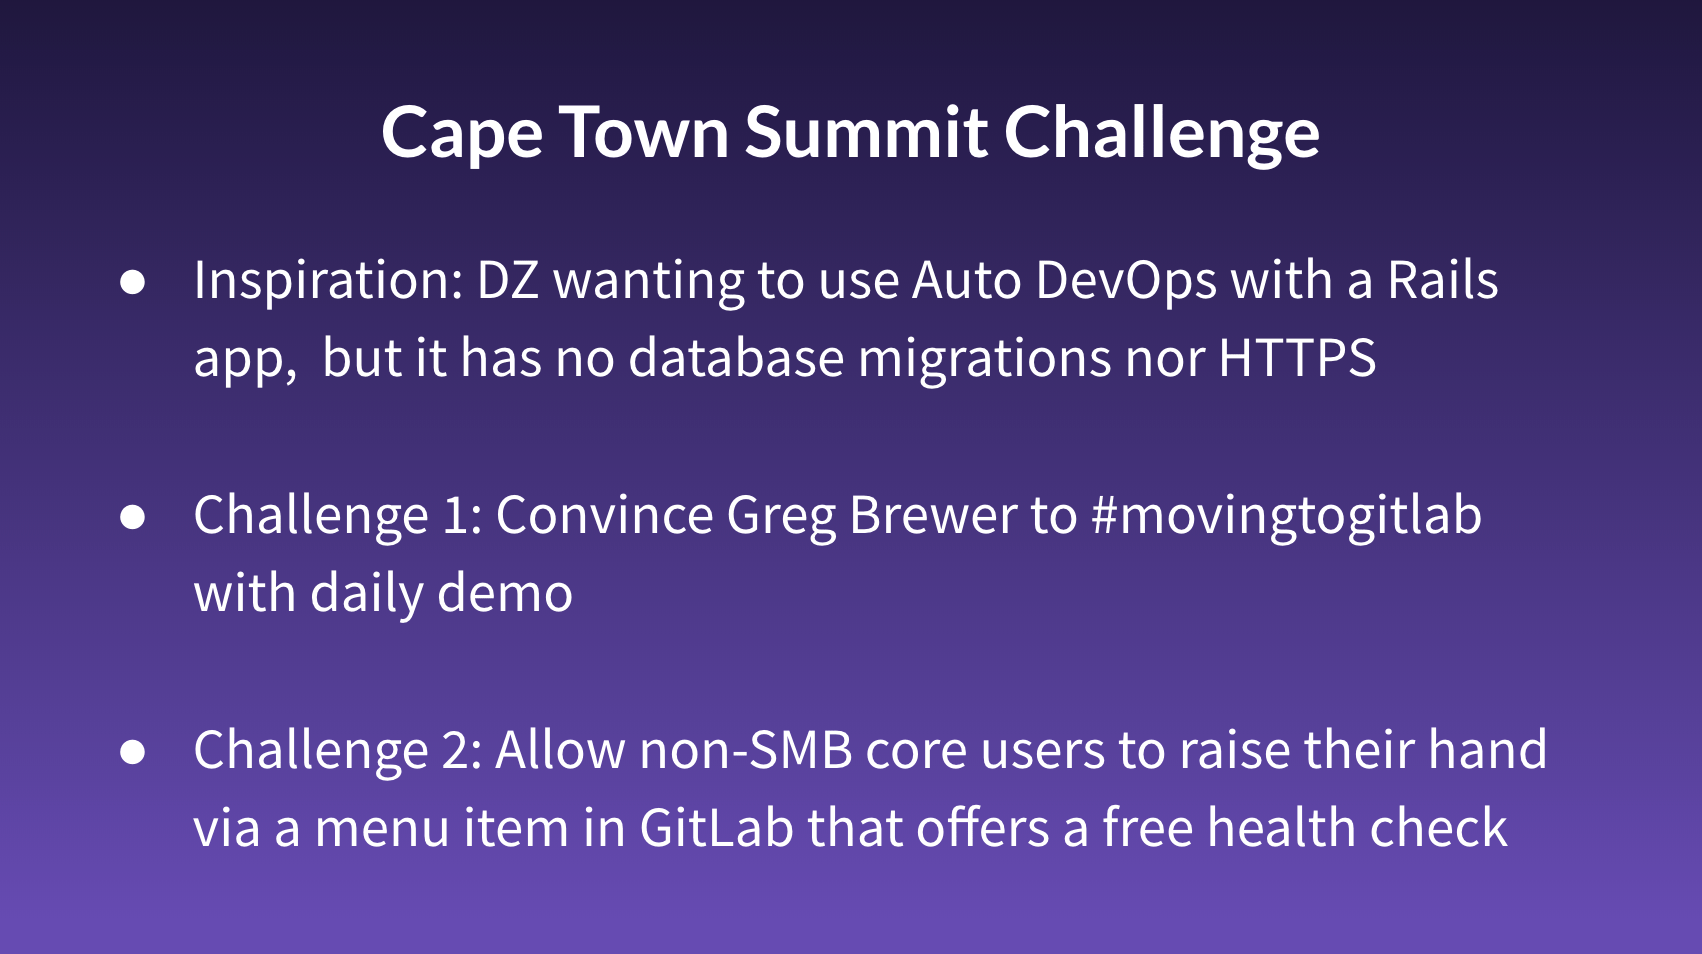 Cape Town summit challenges